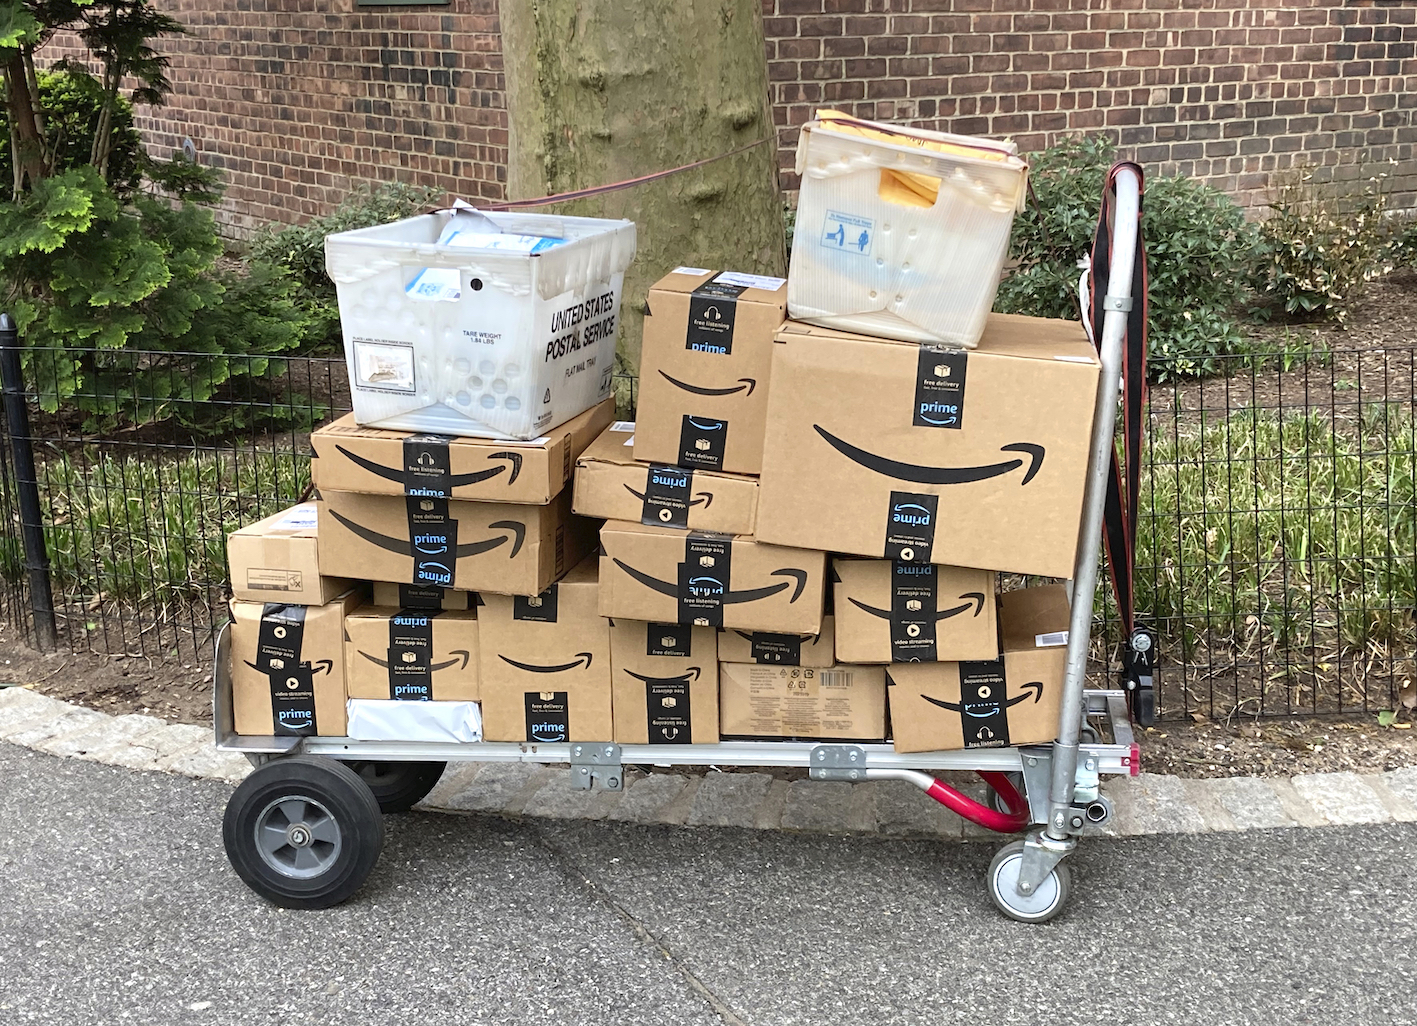 According to a ruling by California's Court of Appeal, Amazon is responsible for faulty products sold on its marketplace by third parties.